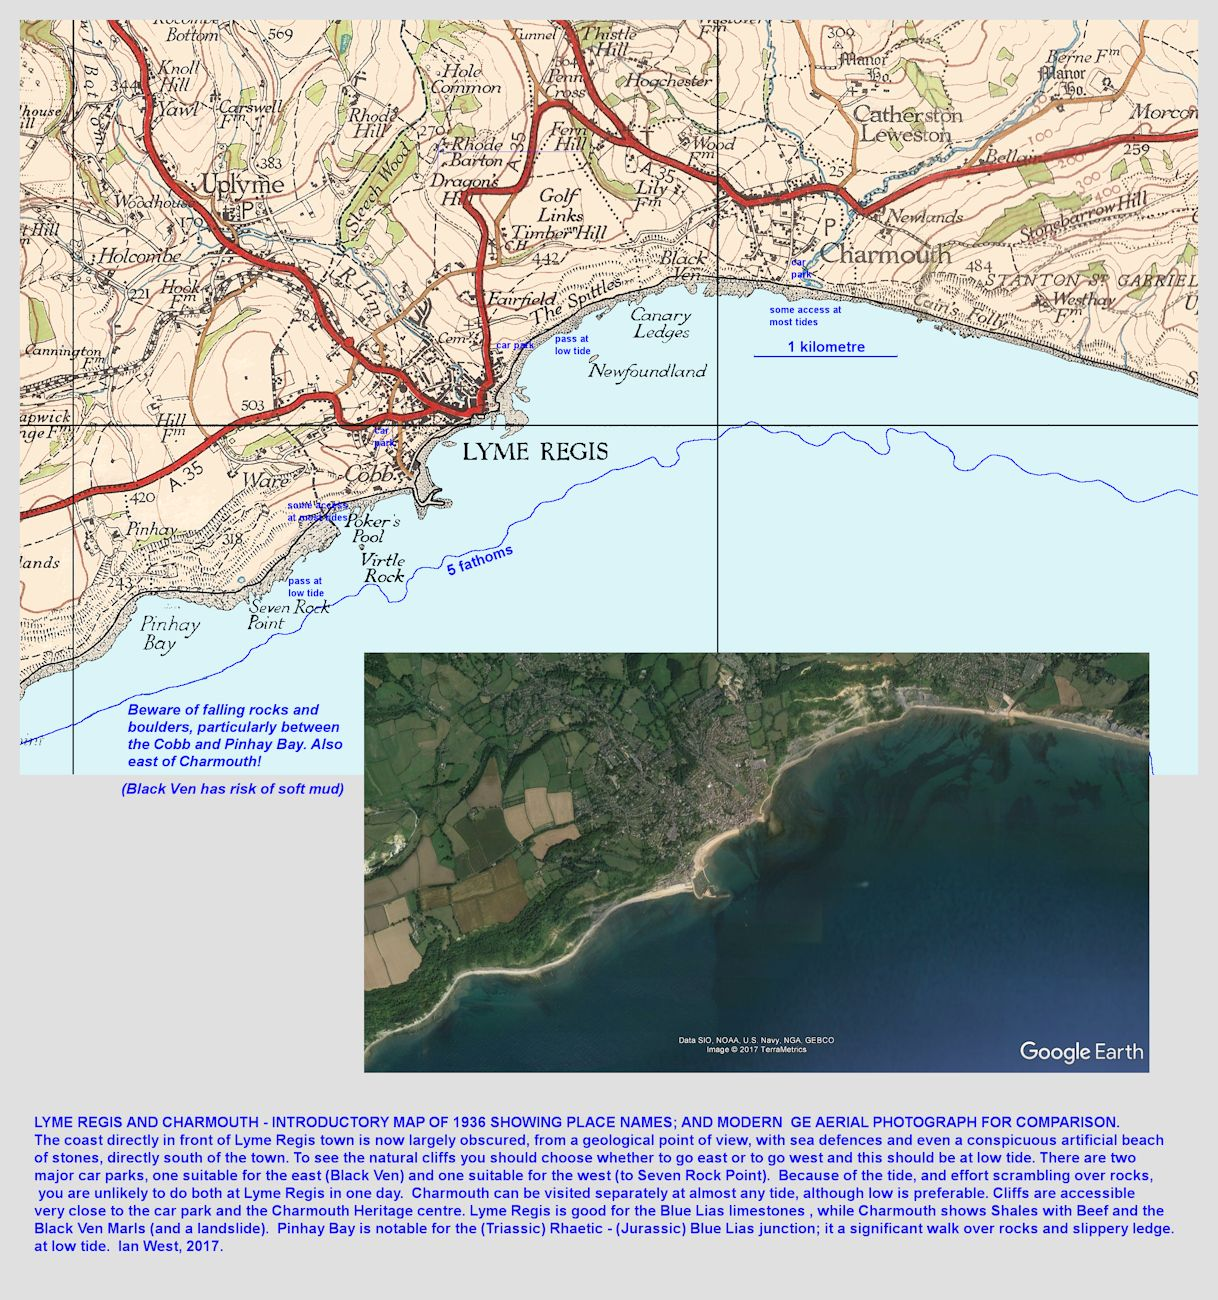 Location map and aerial photograph for Charmouth and Lyme Regis, Dorset; - geological localities